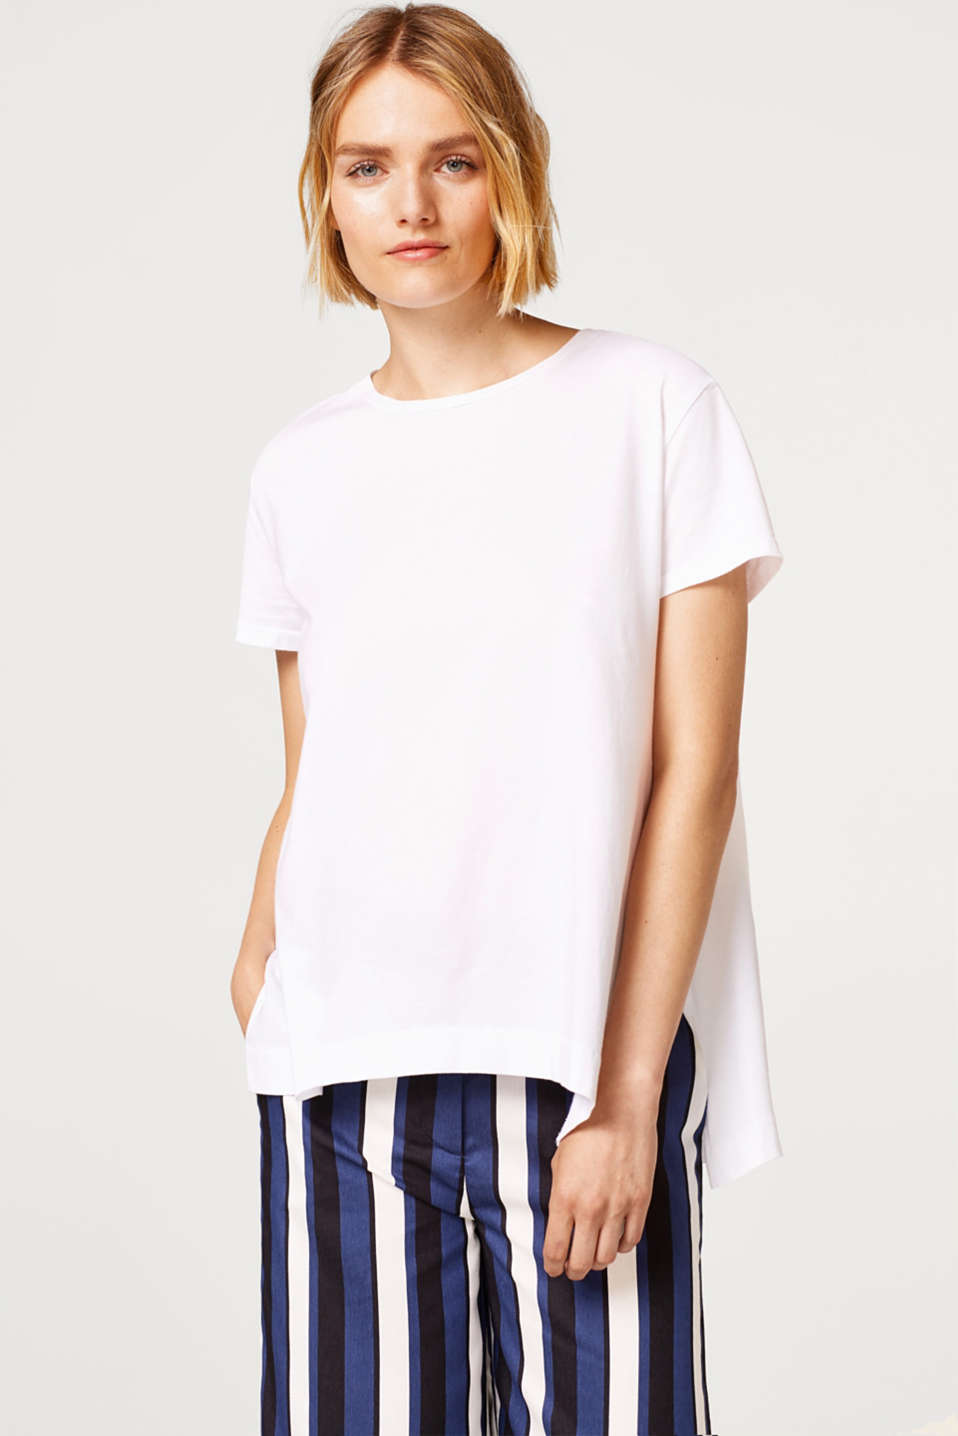 edc - Slightly flared T-shirt, 100% cotton